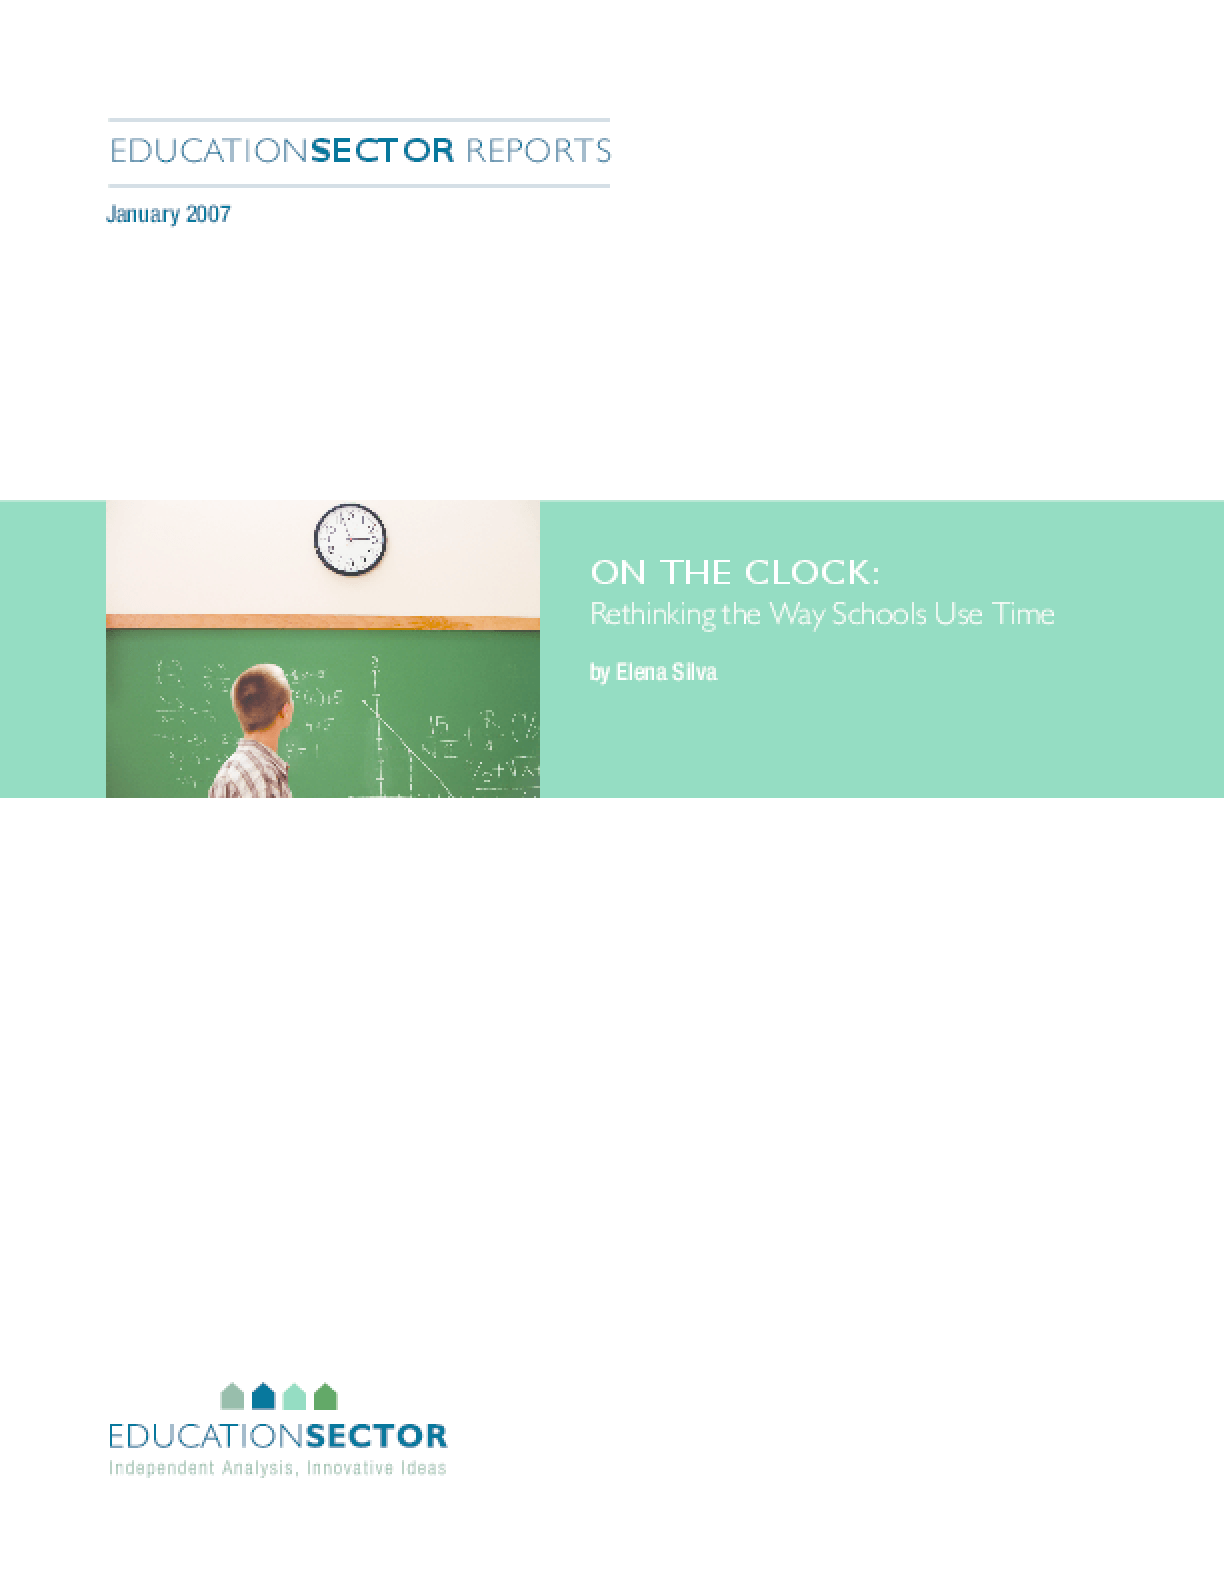 On the Clock: Rethinking the Way Schools Use Time